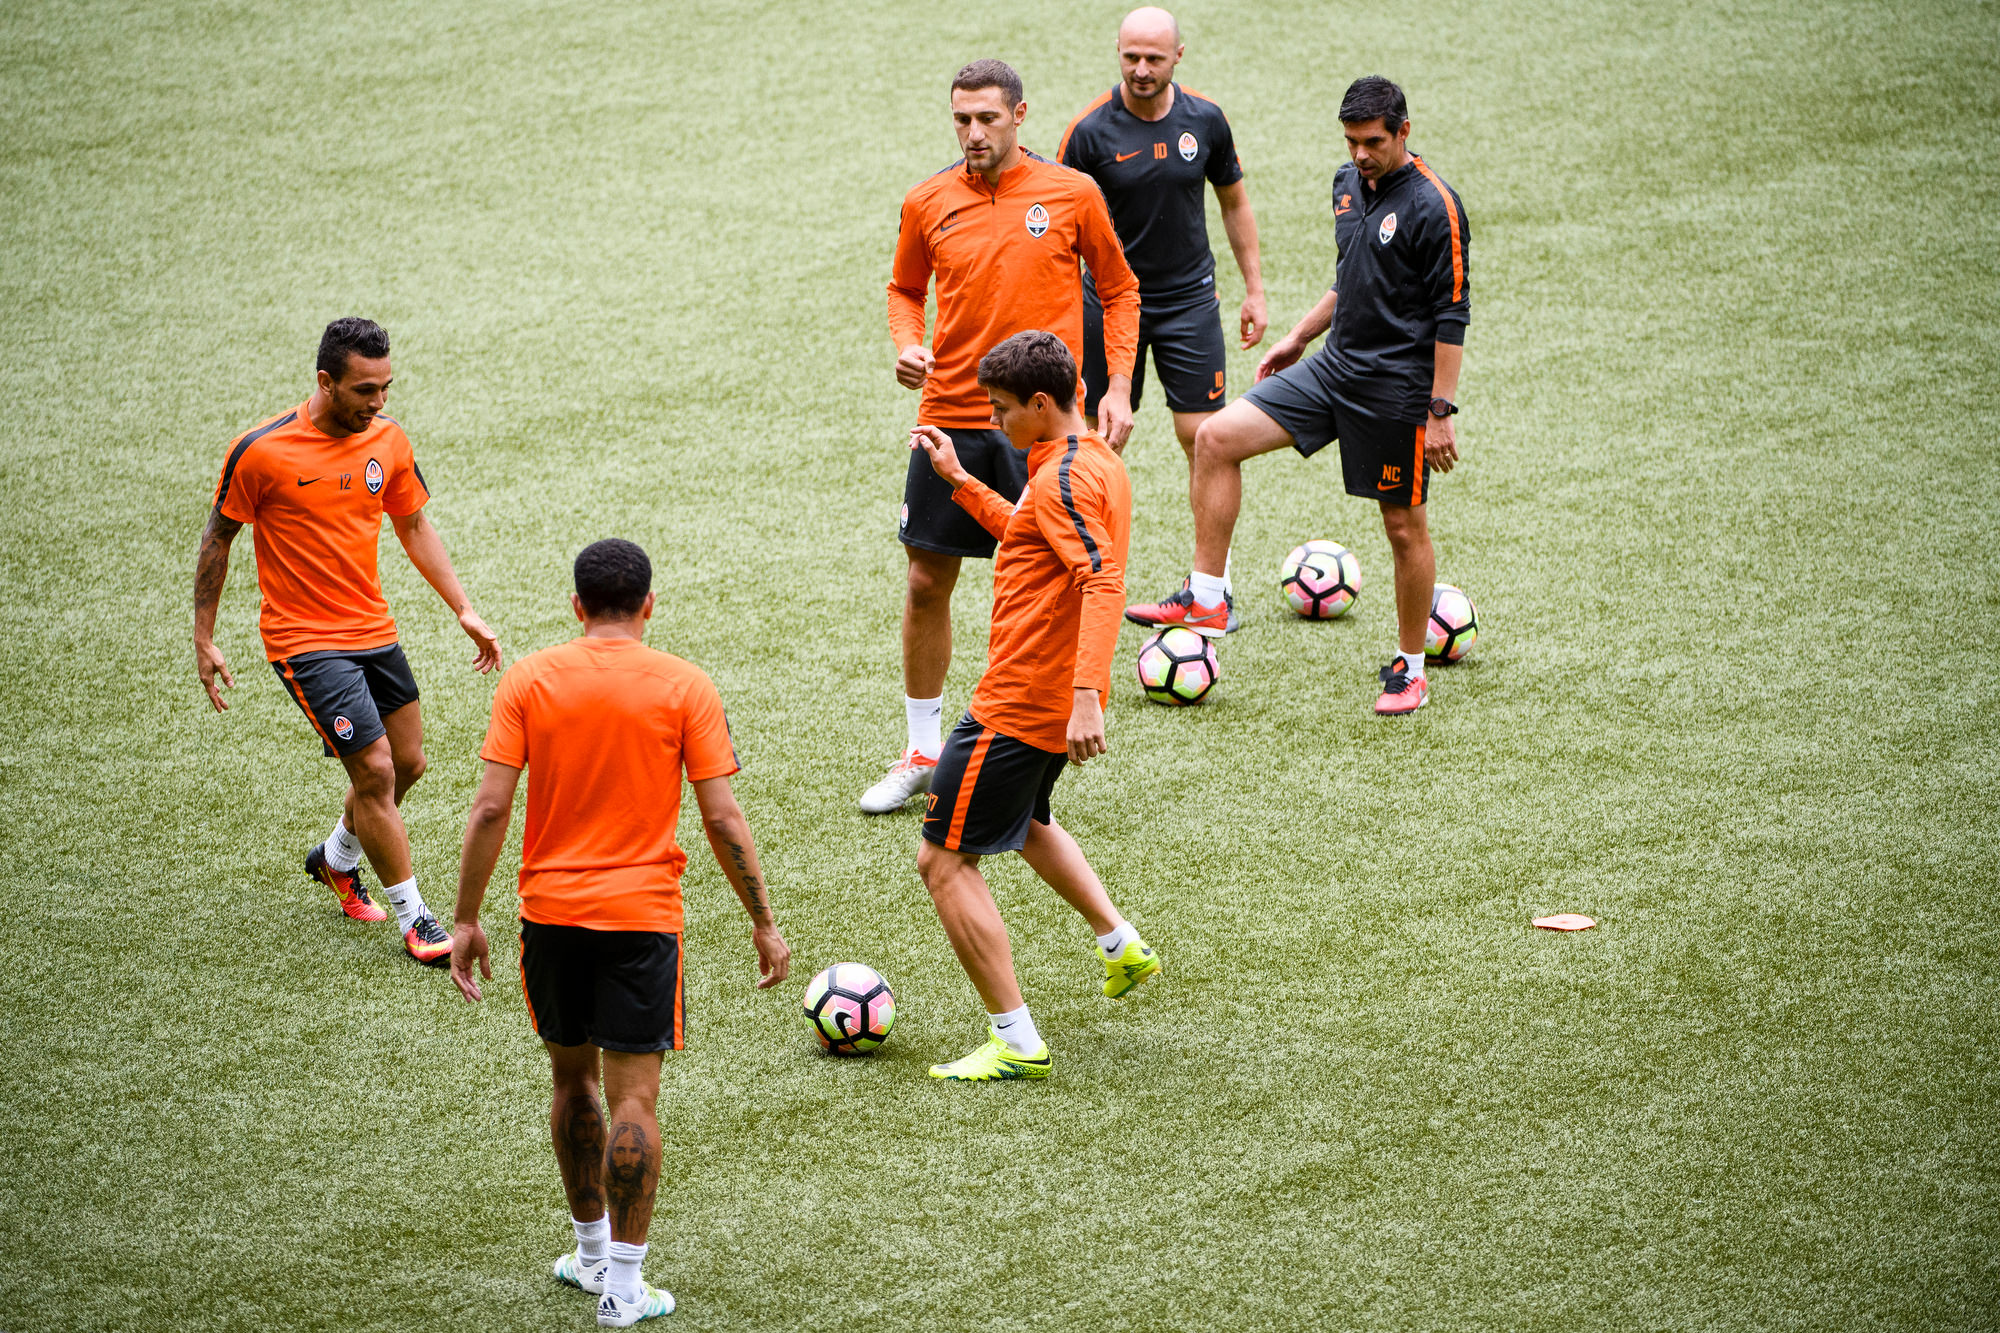 Players from team of Shakhtar Donetsk on the occasion of the training before the match of the third qualifying round of the UEFA Champions League final between BSC YB and FC Shakhtar Donetsk on August 4, 2016 Bern, photographed on Tuesday, August 2, 2016 at the Stade de Suisse in Bern (KEYSTONE/Manuel Lopez),